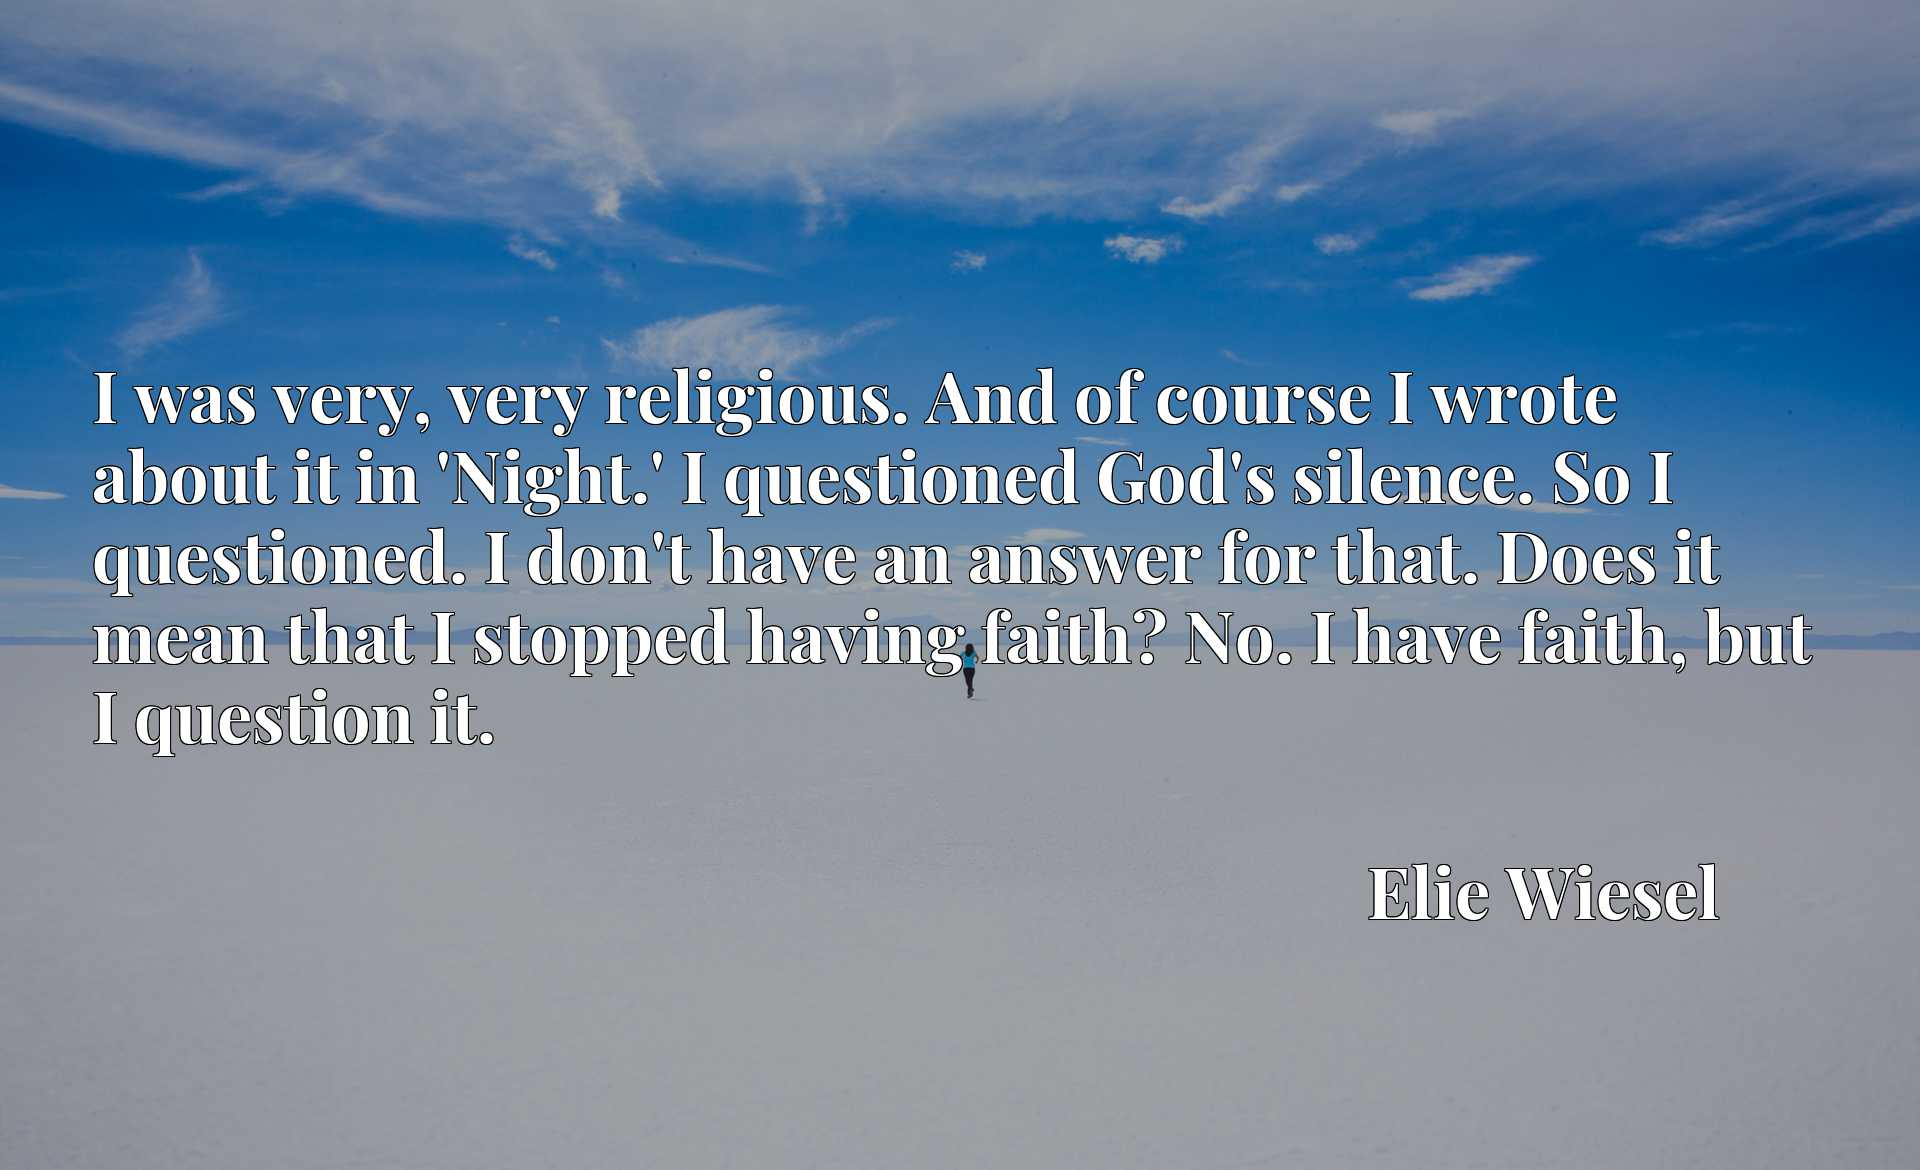 I was very, very religious. And of course I wrote about it in 'Night.' I questioned God's silence. So I questioned. I don't have an answer for that. Does it mean that I stopped having faith? No. I have faith, but I question it.